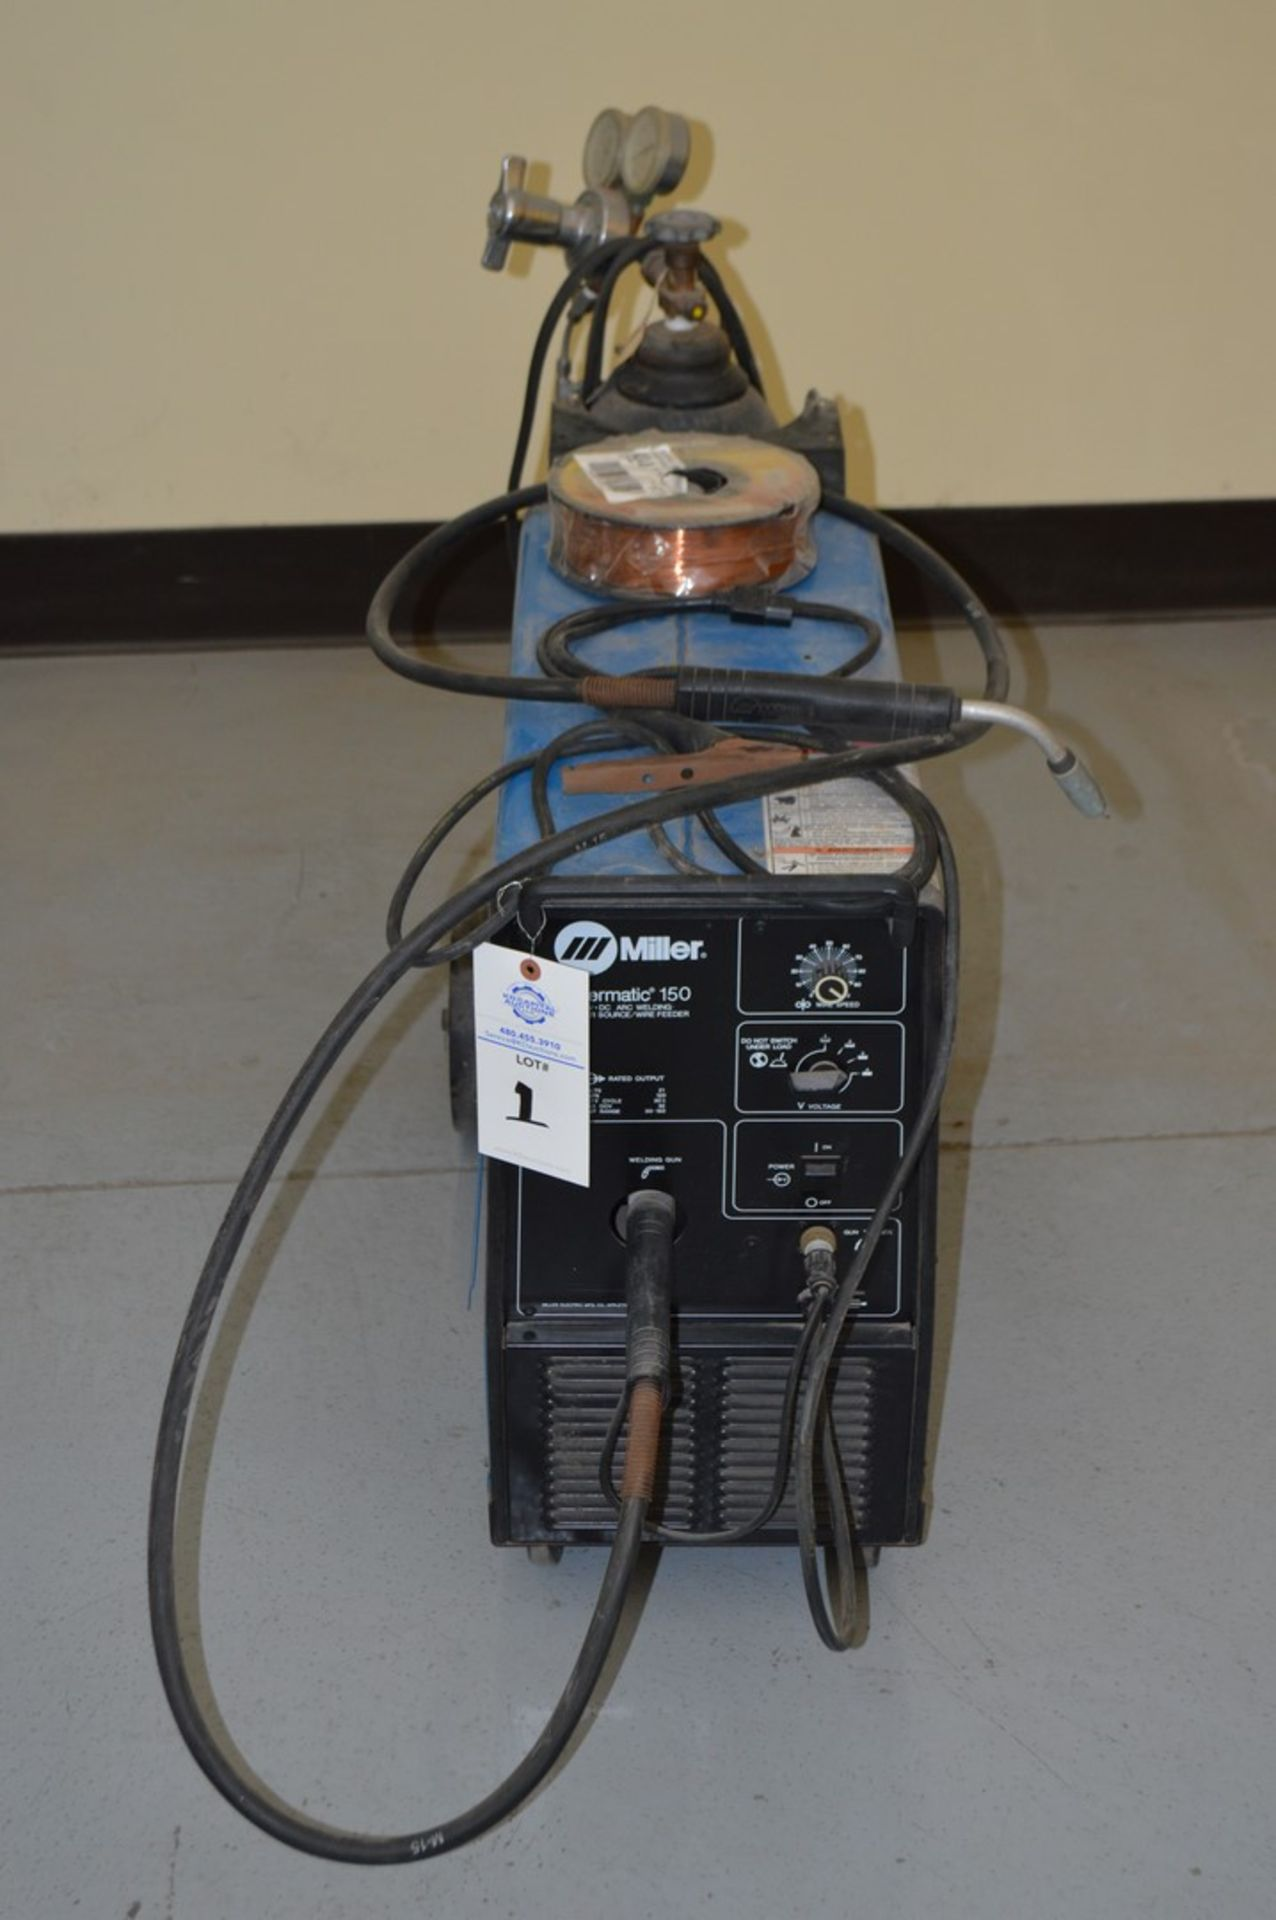 Miller Millermate 150 MIG welder with rolling cart with extra spoil of wire and small argon tank